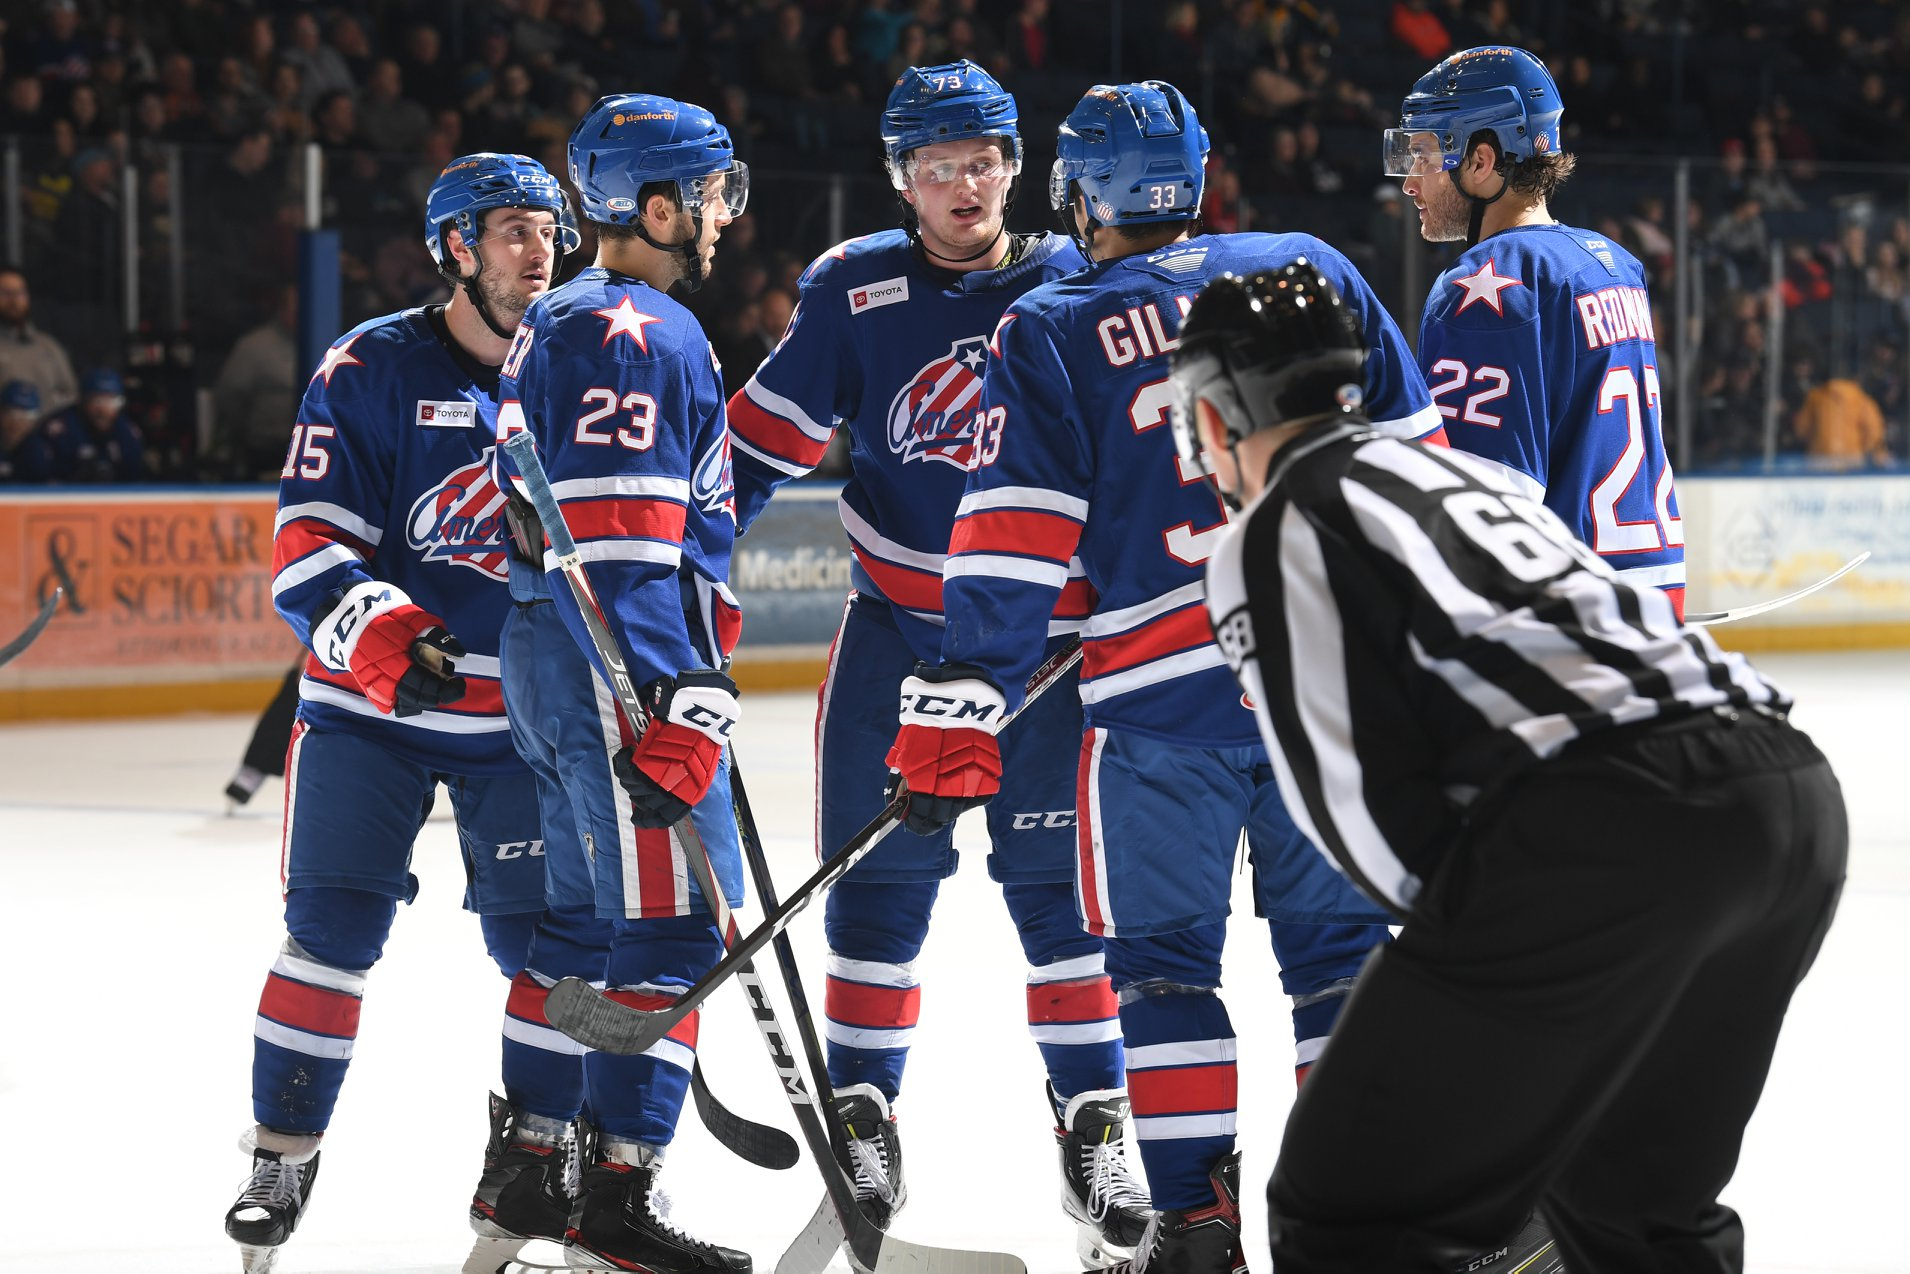 Weekend Preview: Amerks Need to End Another Streak